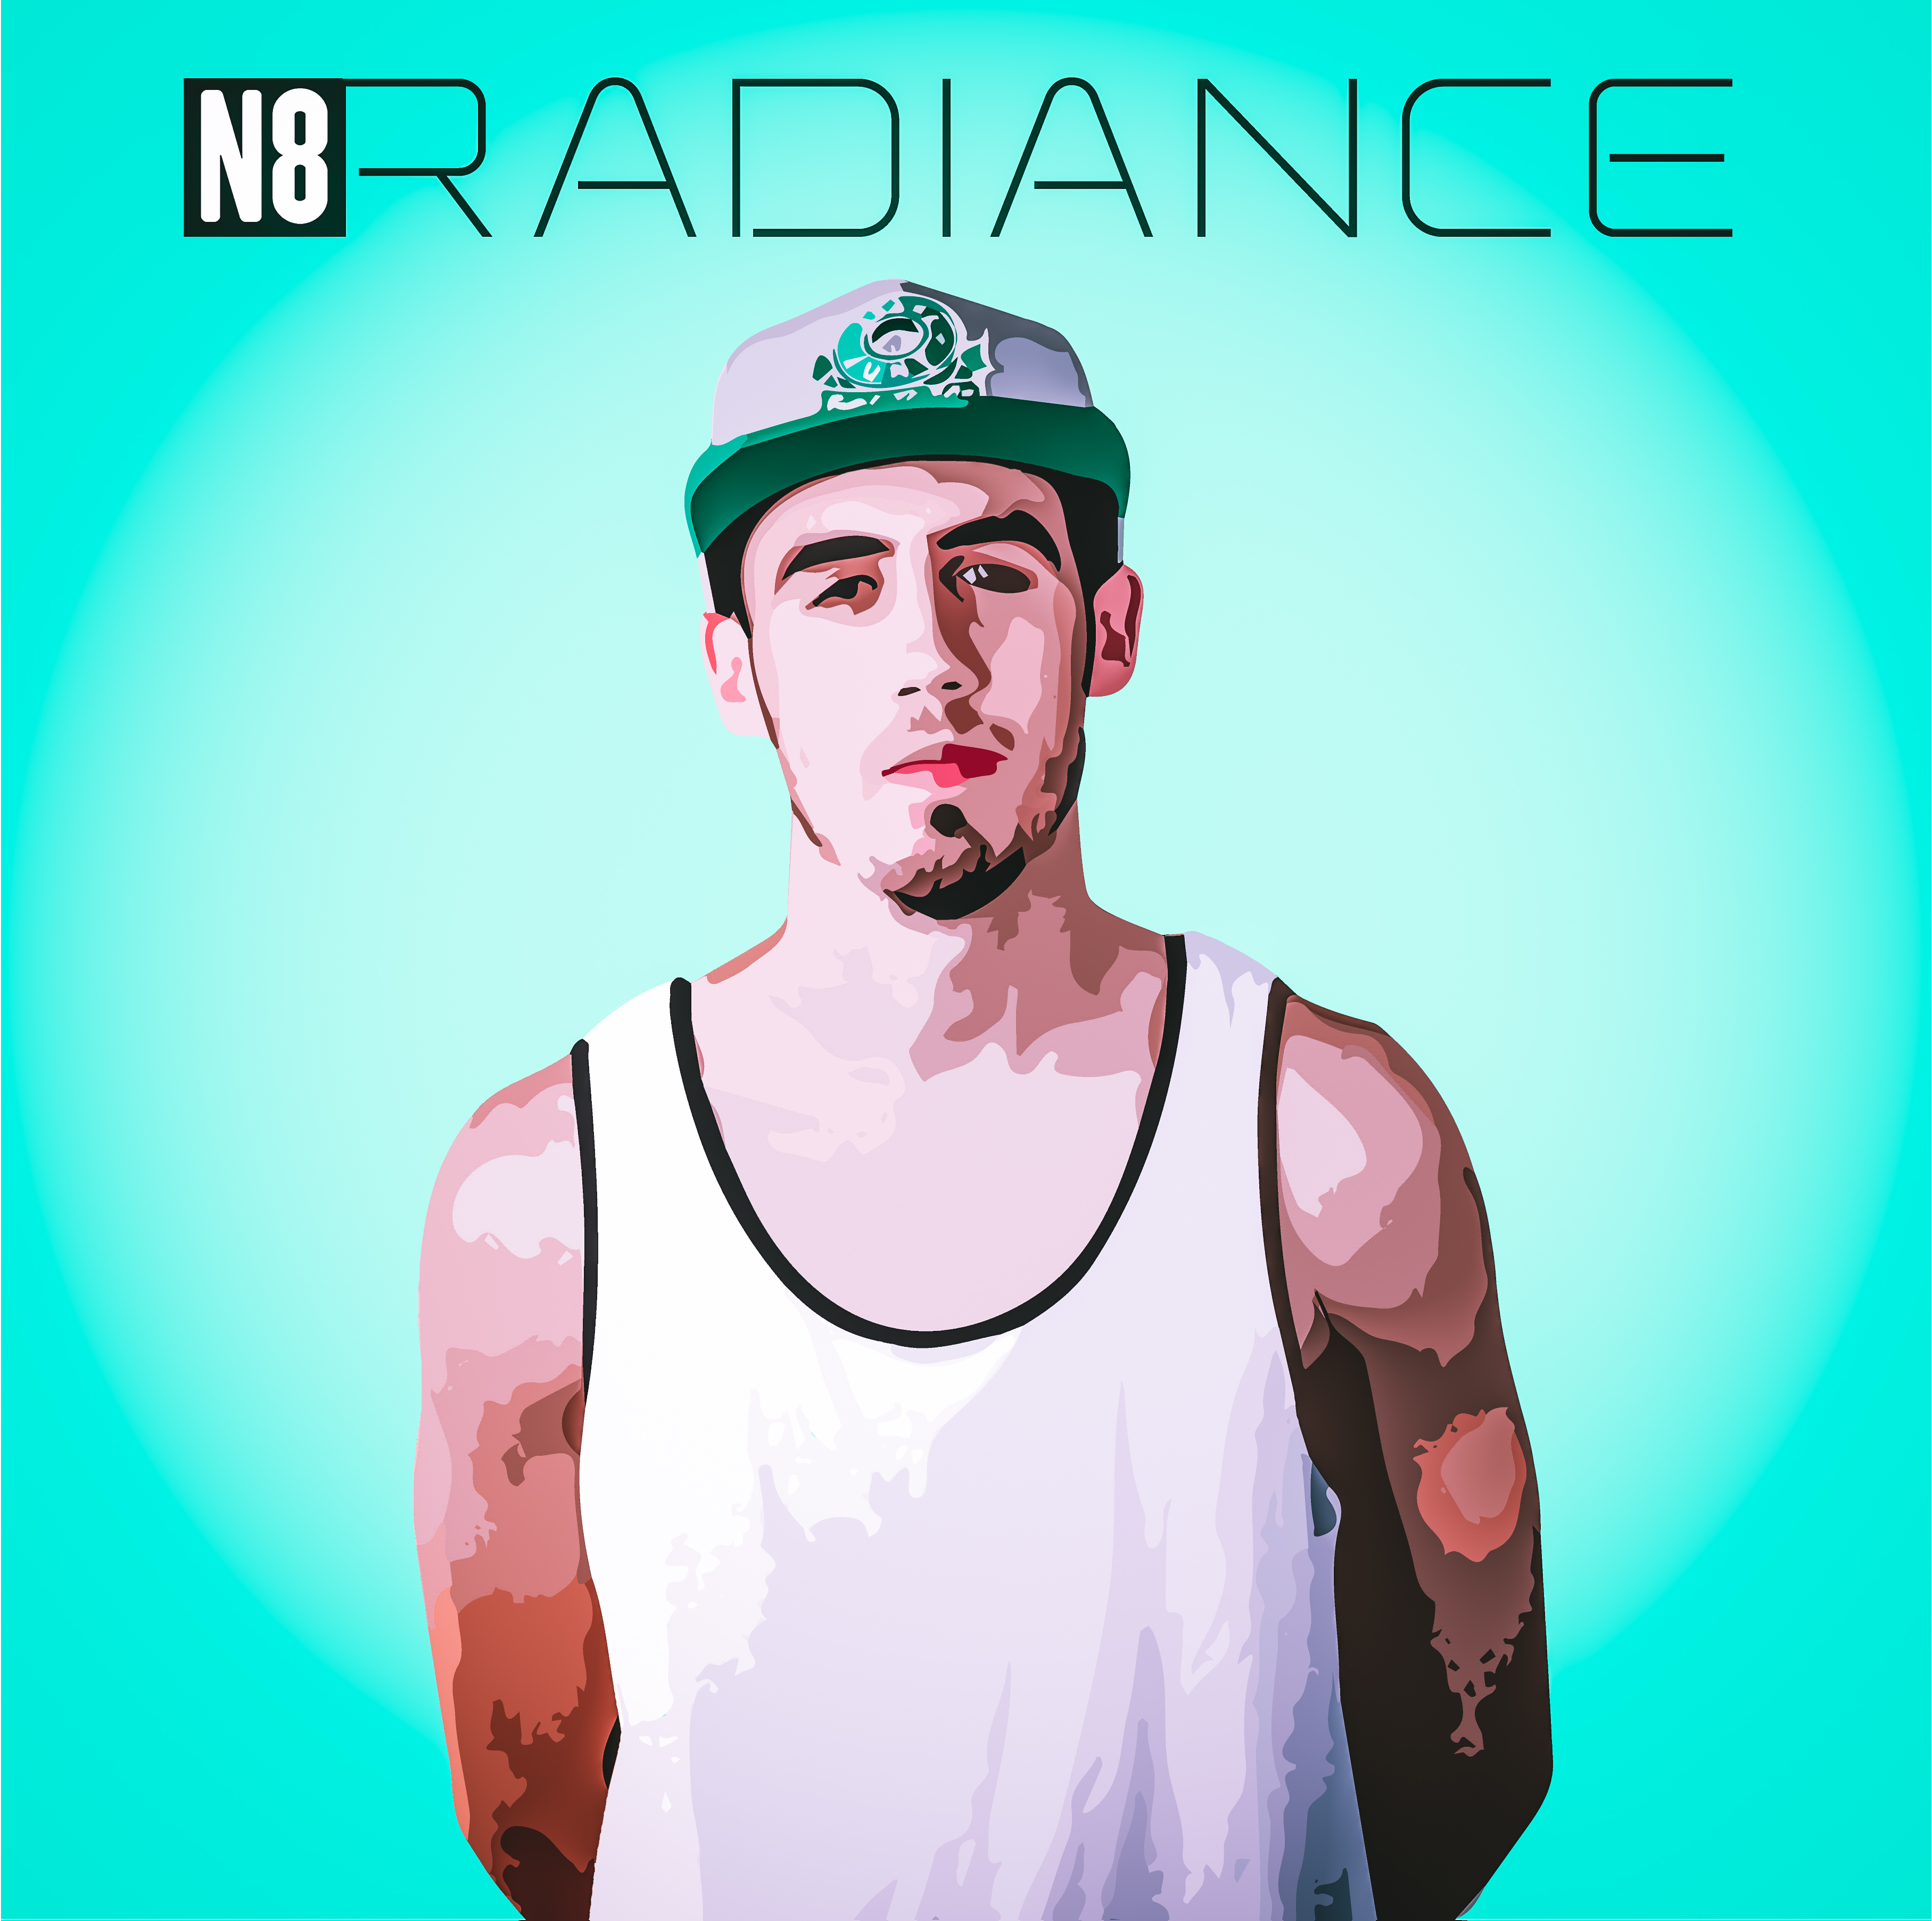 N8 Radiance Cover